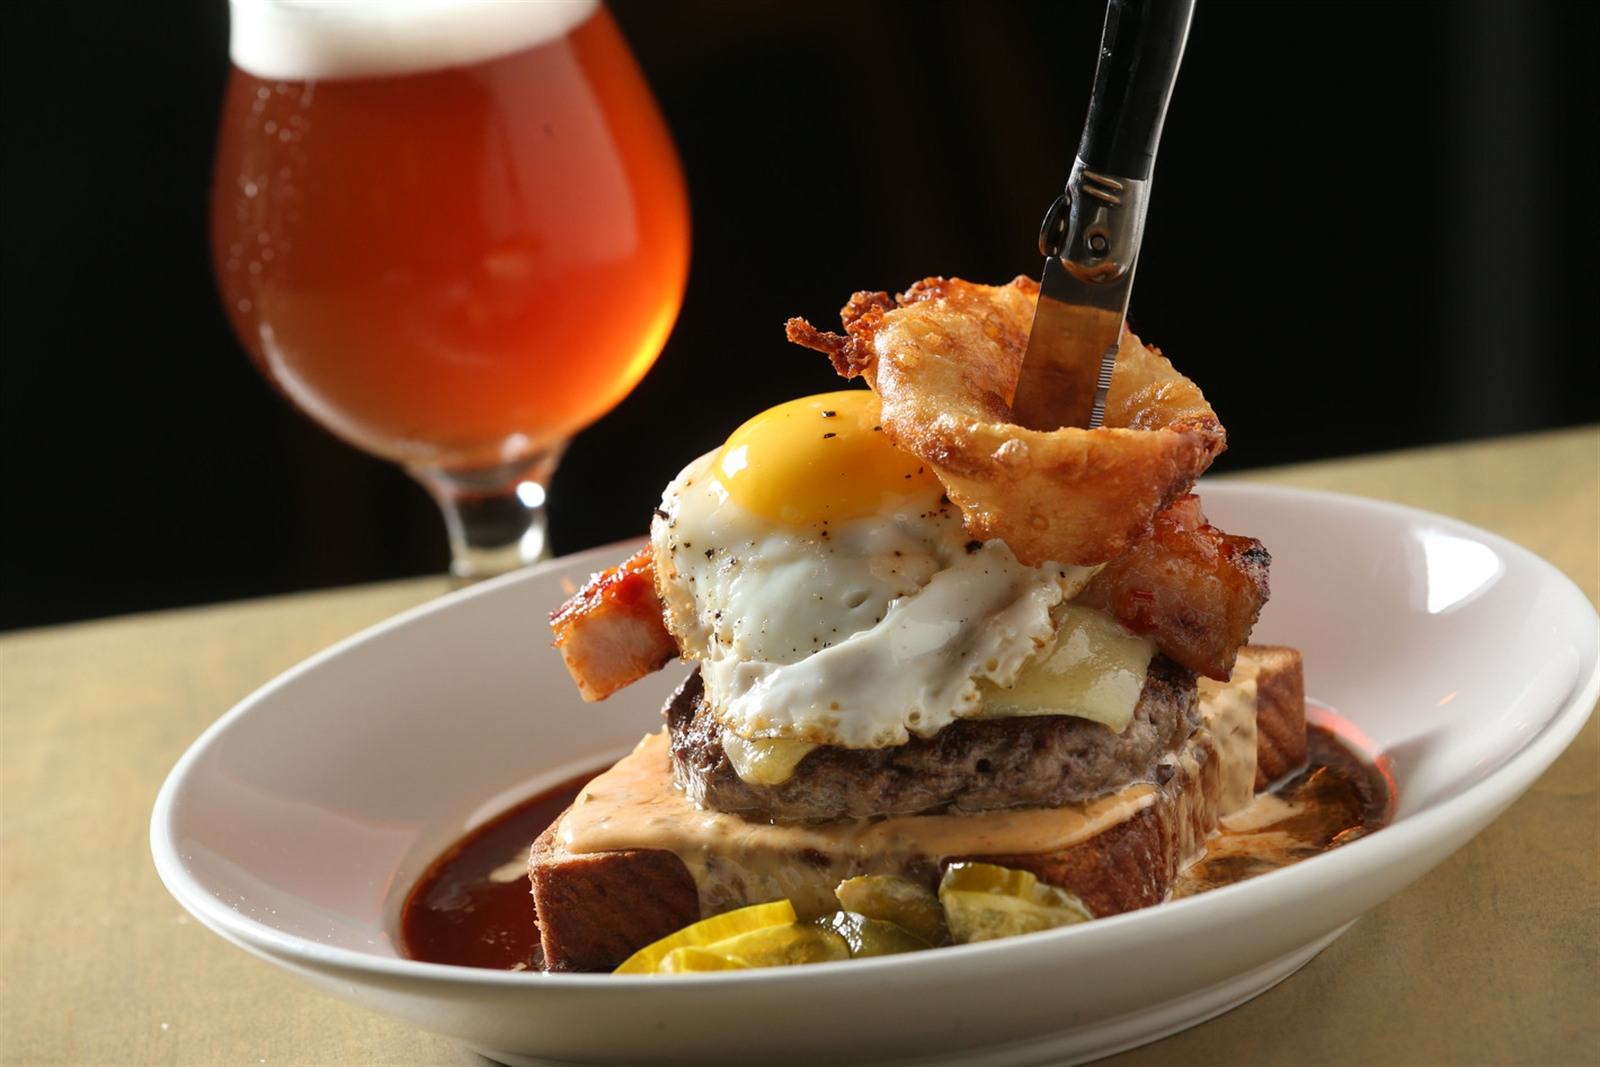 At Thin Man Brewery, the Tokyo burger offers 8 ounces of natural beef, bone marrow, glazed pork belly, Gruyere cheese, pickles, caramelized onions, spicy remoulade, fried egg and au poivre sauce on brioche.